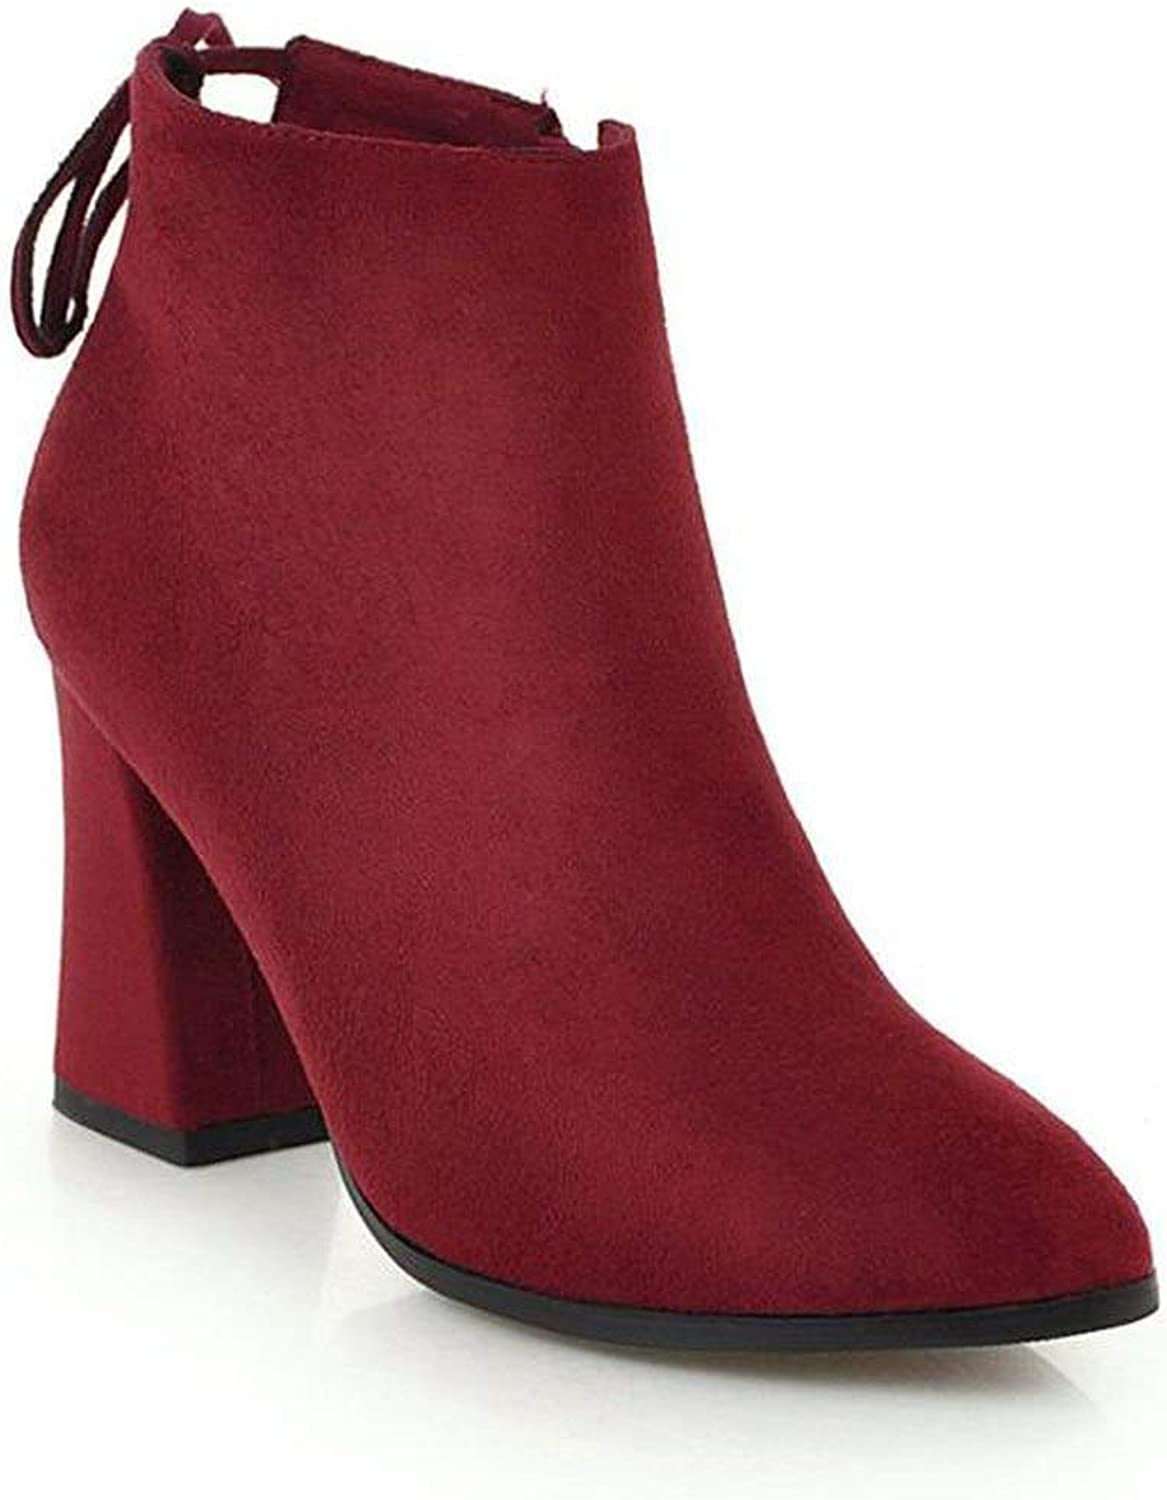 Autumn Winter Women Boots Solid Lace-up Ladies shoes Pu Leather Boots